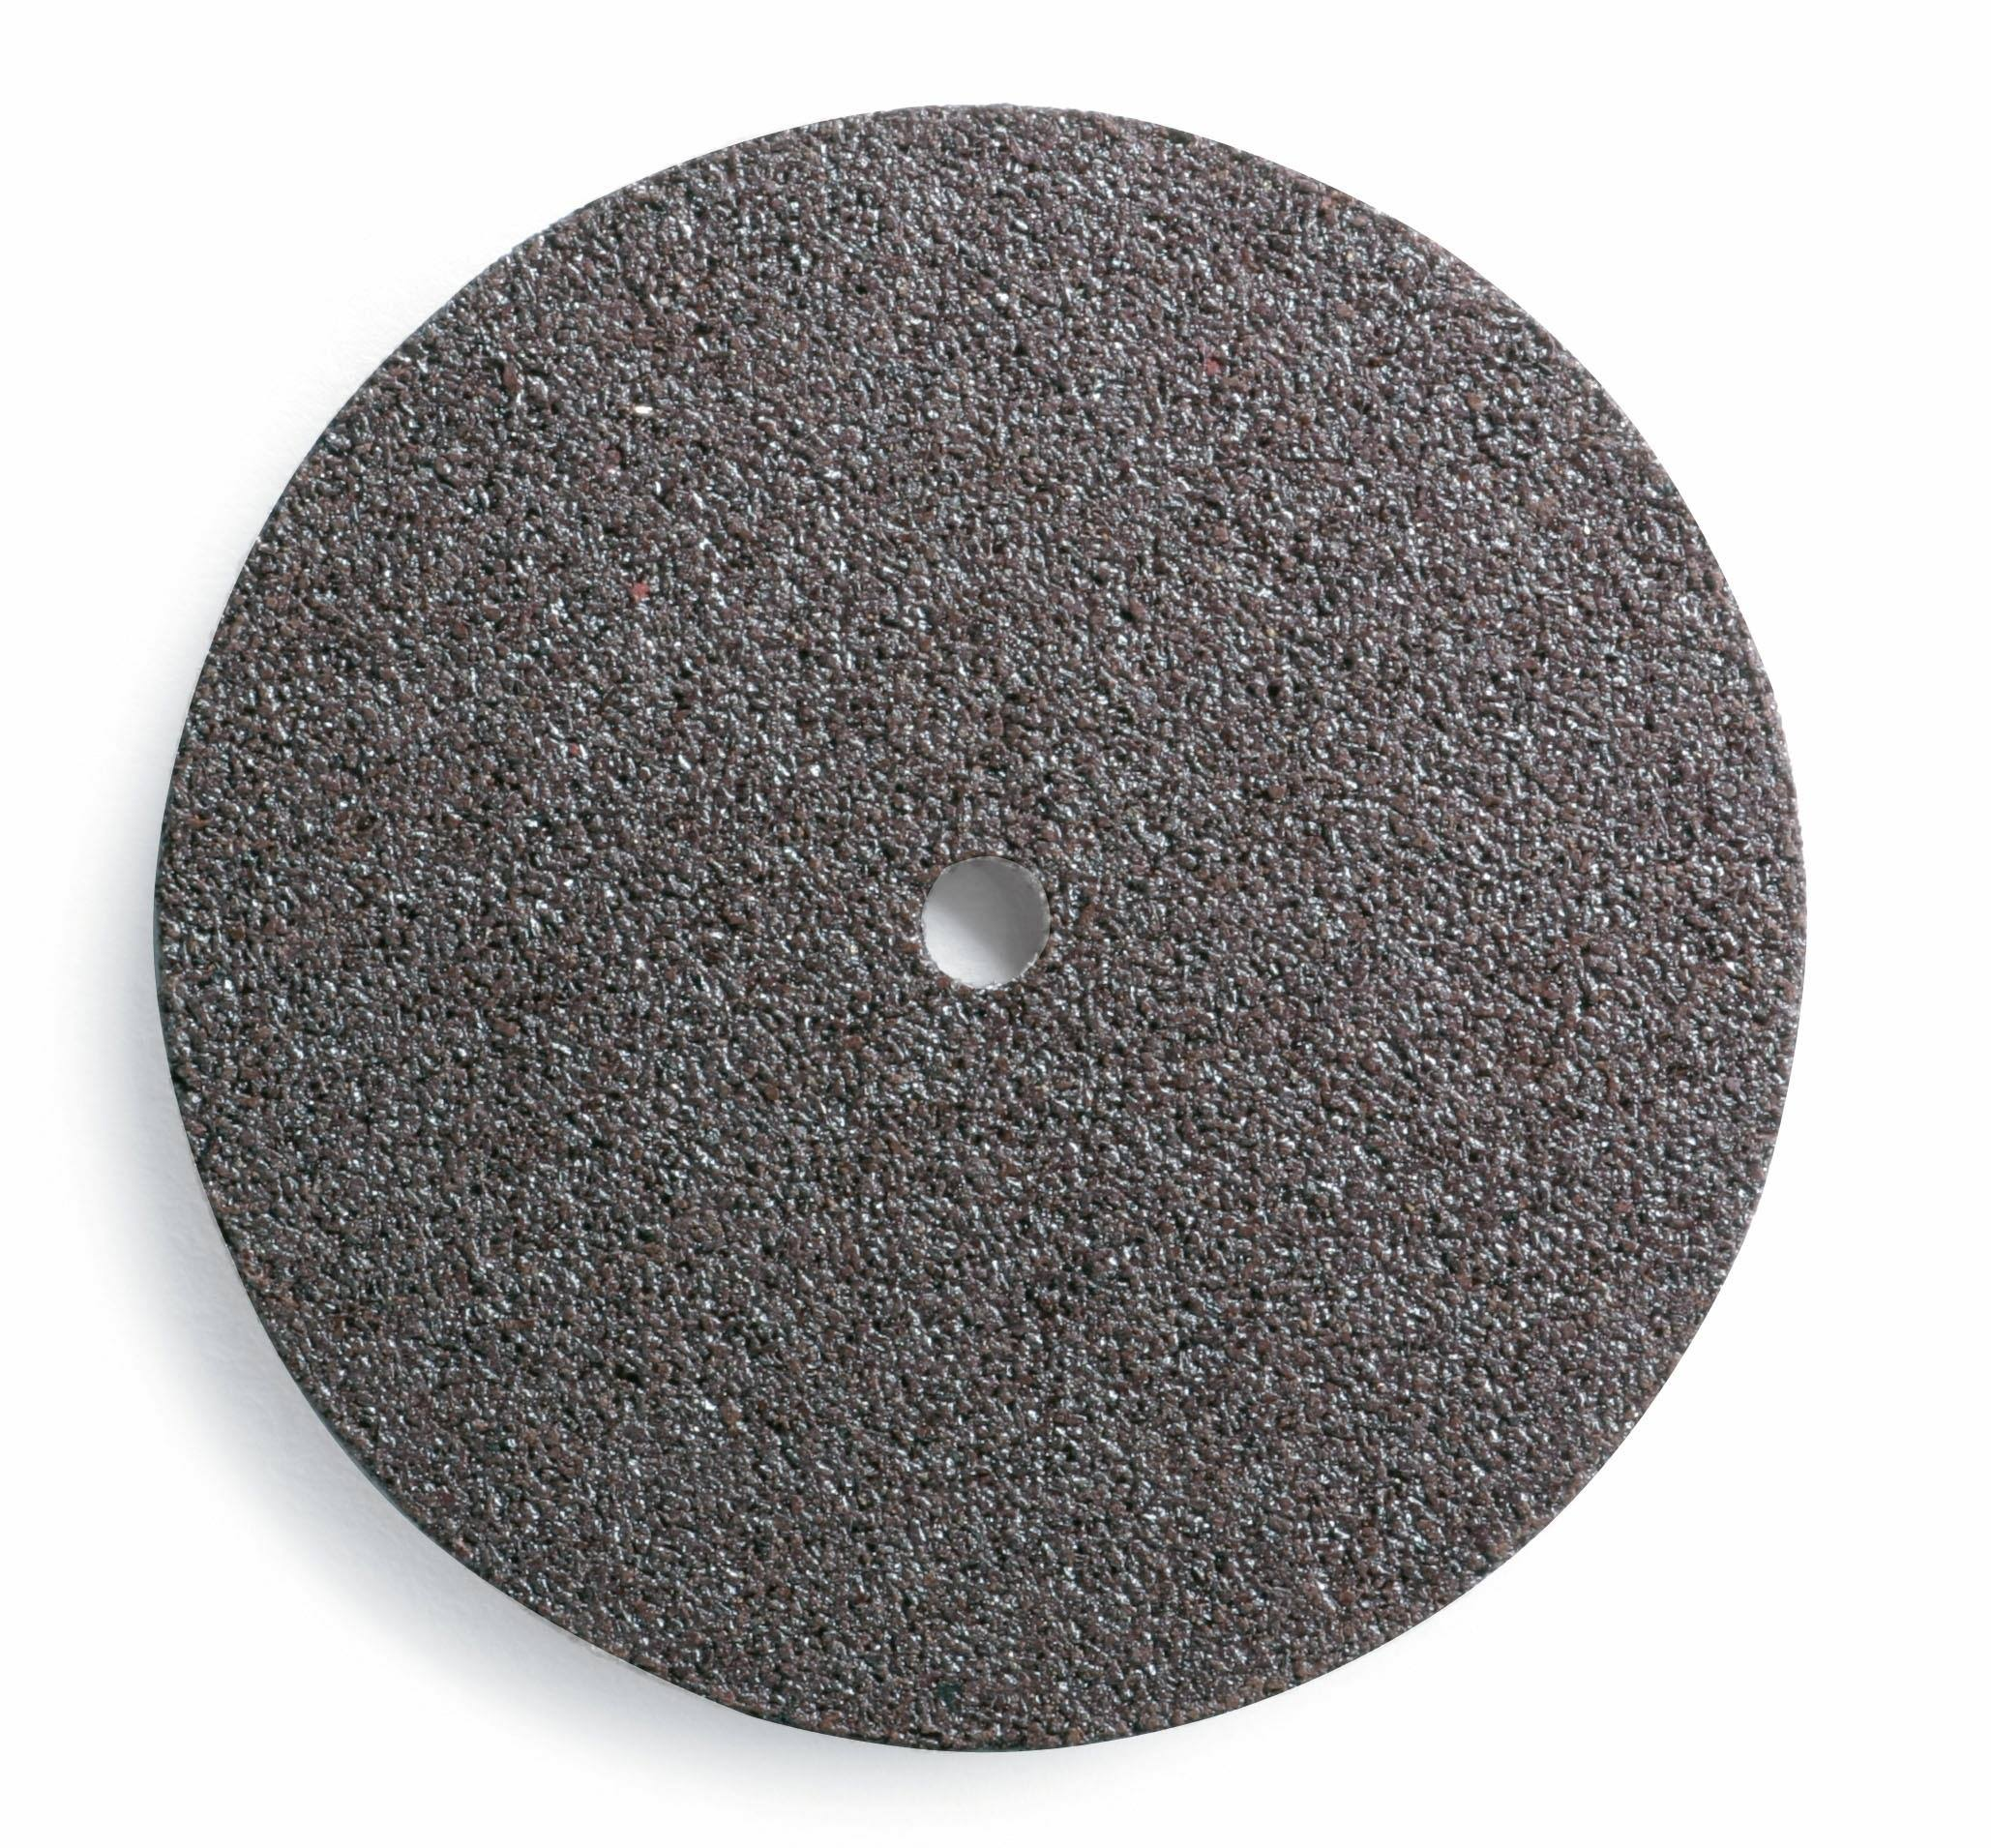 "Dremel Cut-Off Wheel - 15/16"", x20"